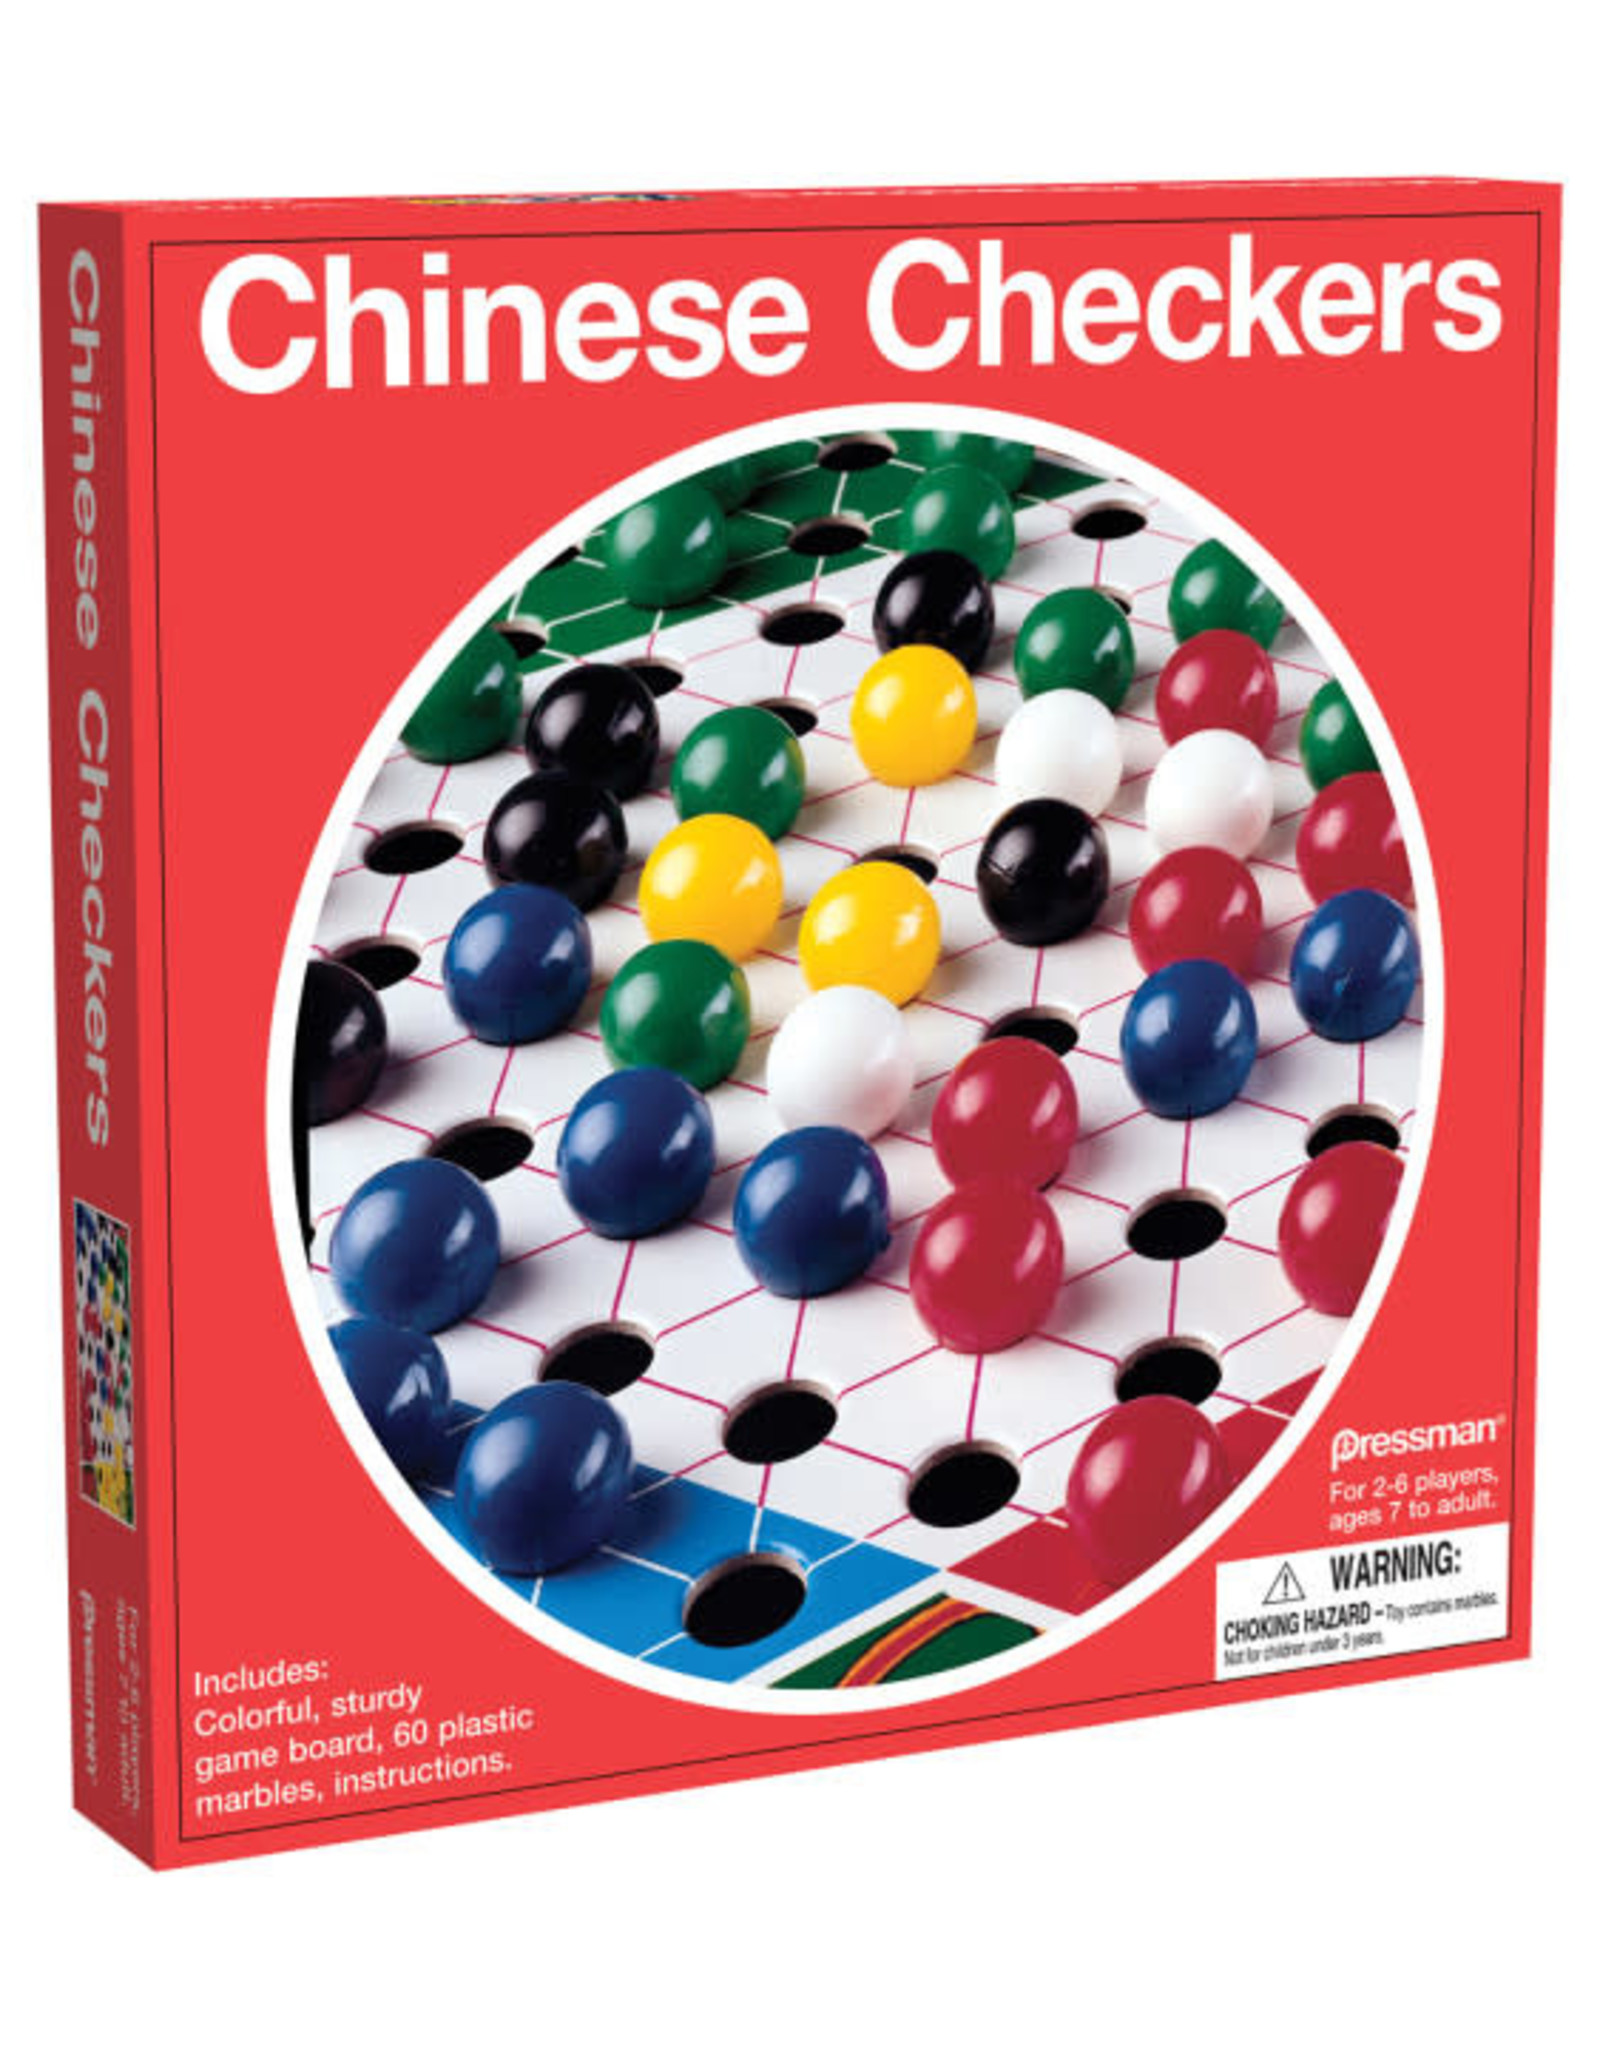 Goliath/Pressman Chinese Checkers